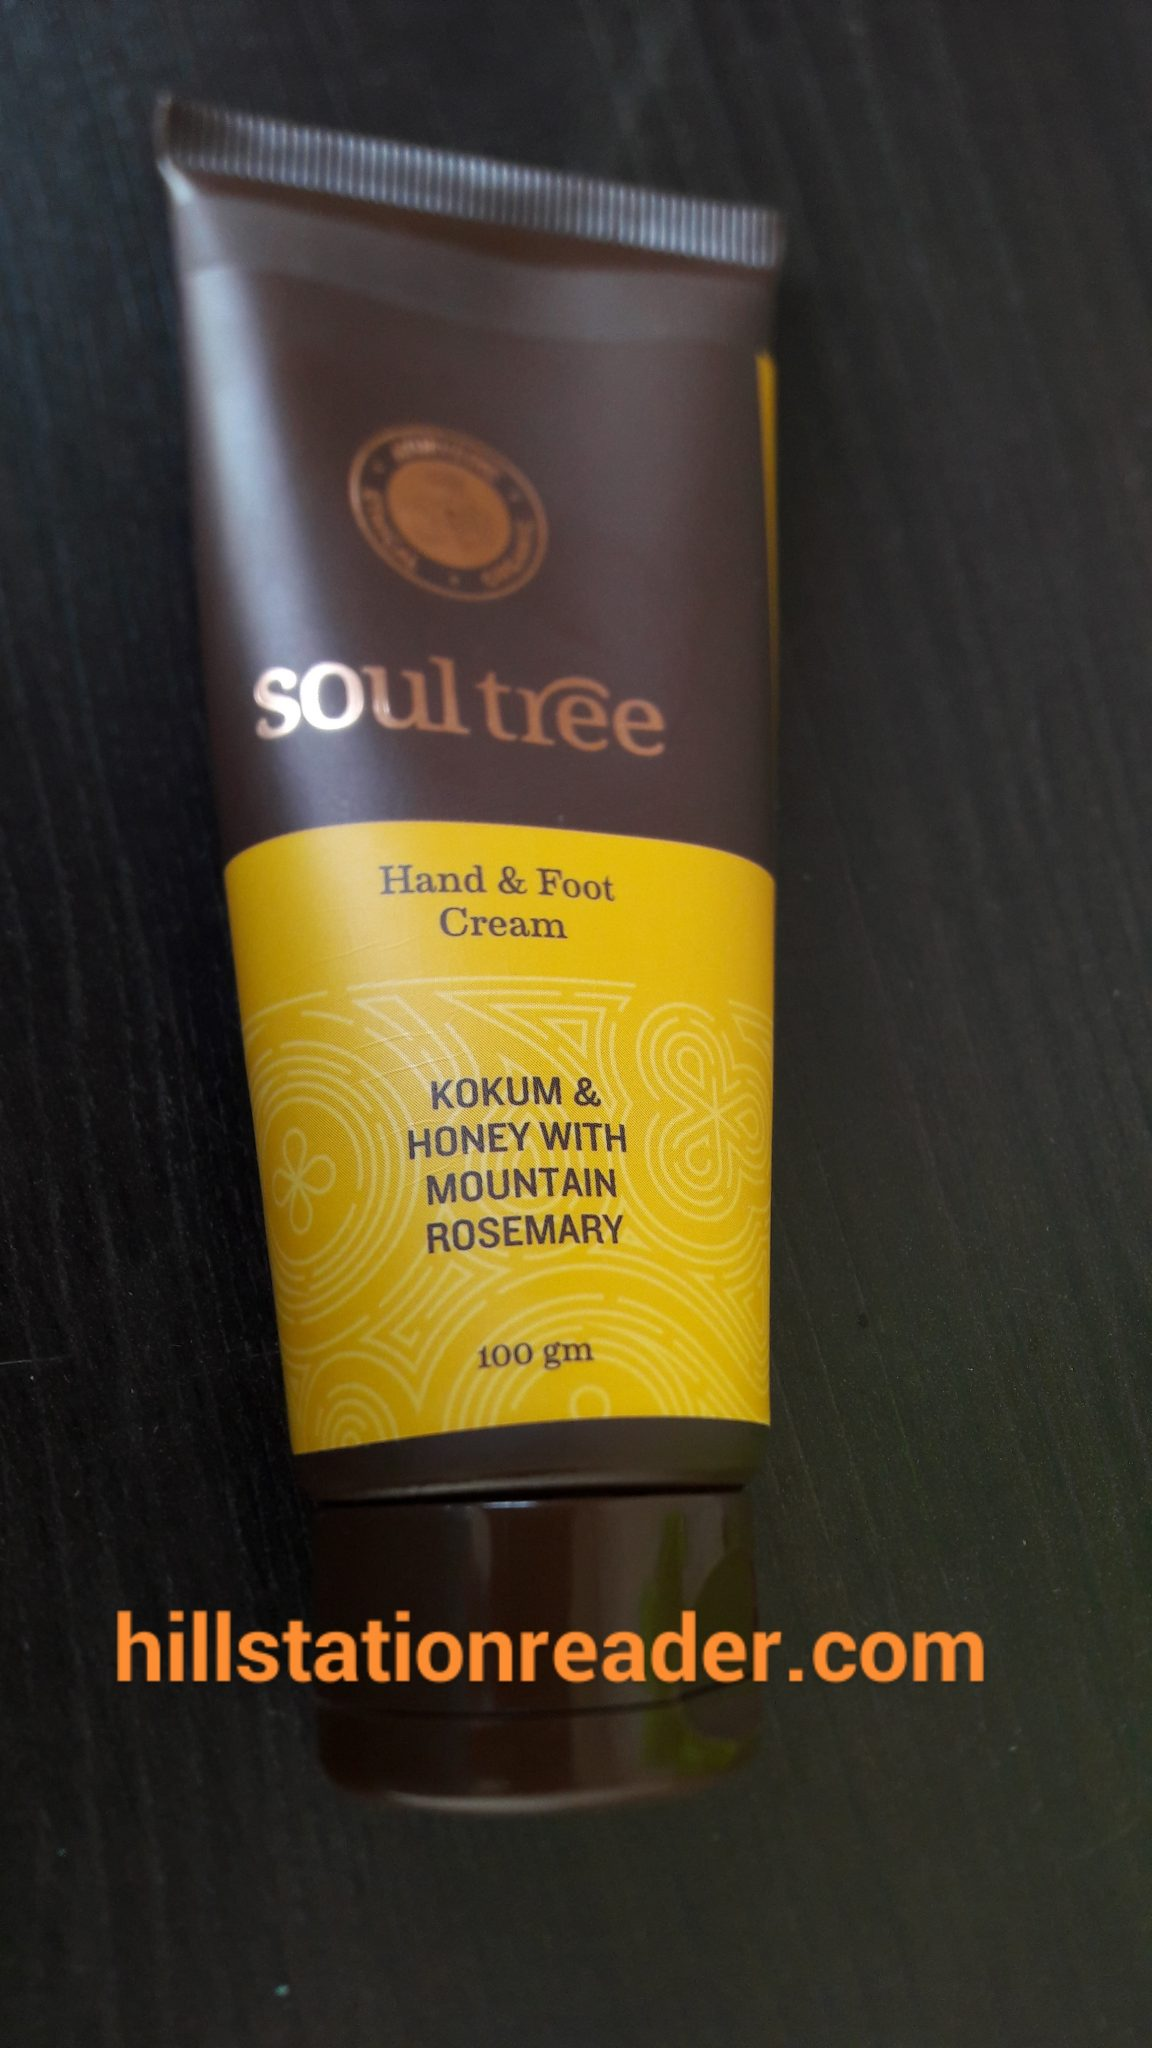 Hand&Foot cream by Soultree